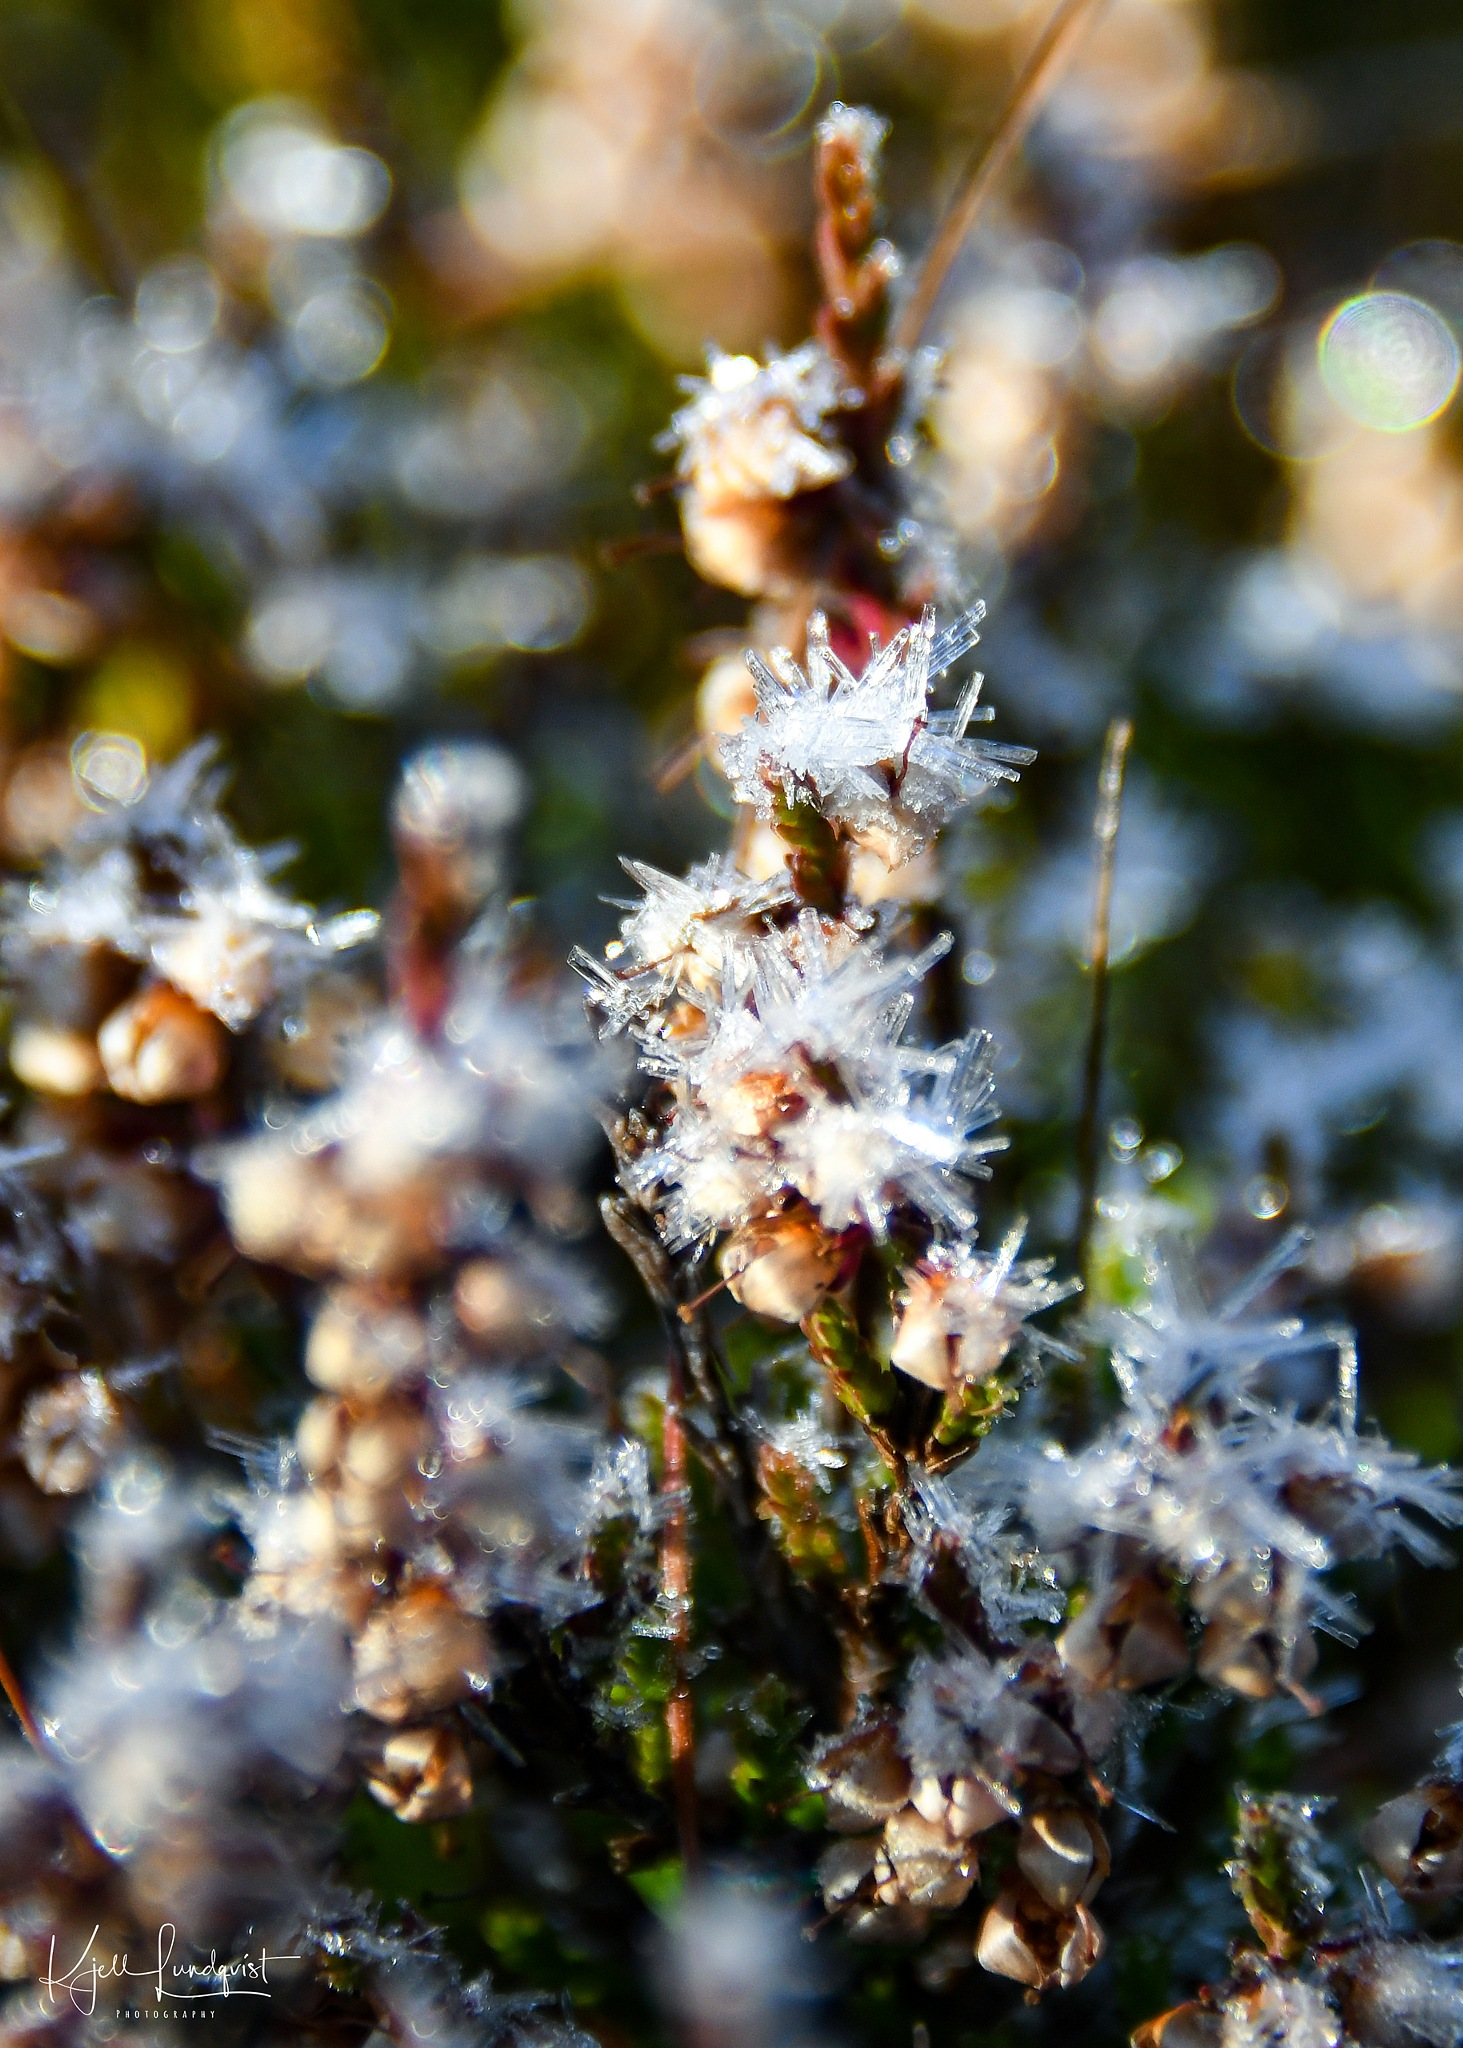 Ice crystal heather flower by Kjell Lundqvist